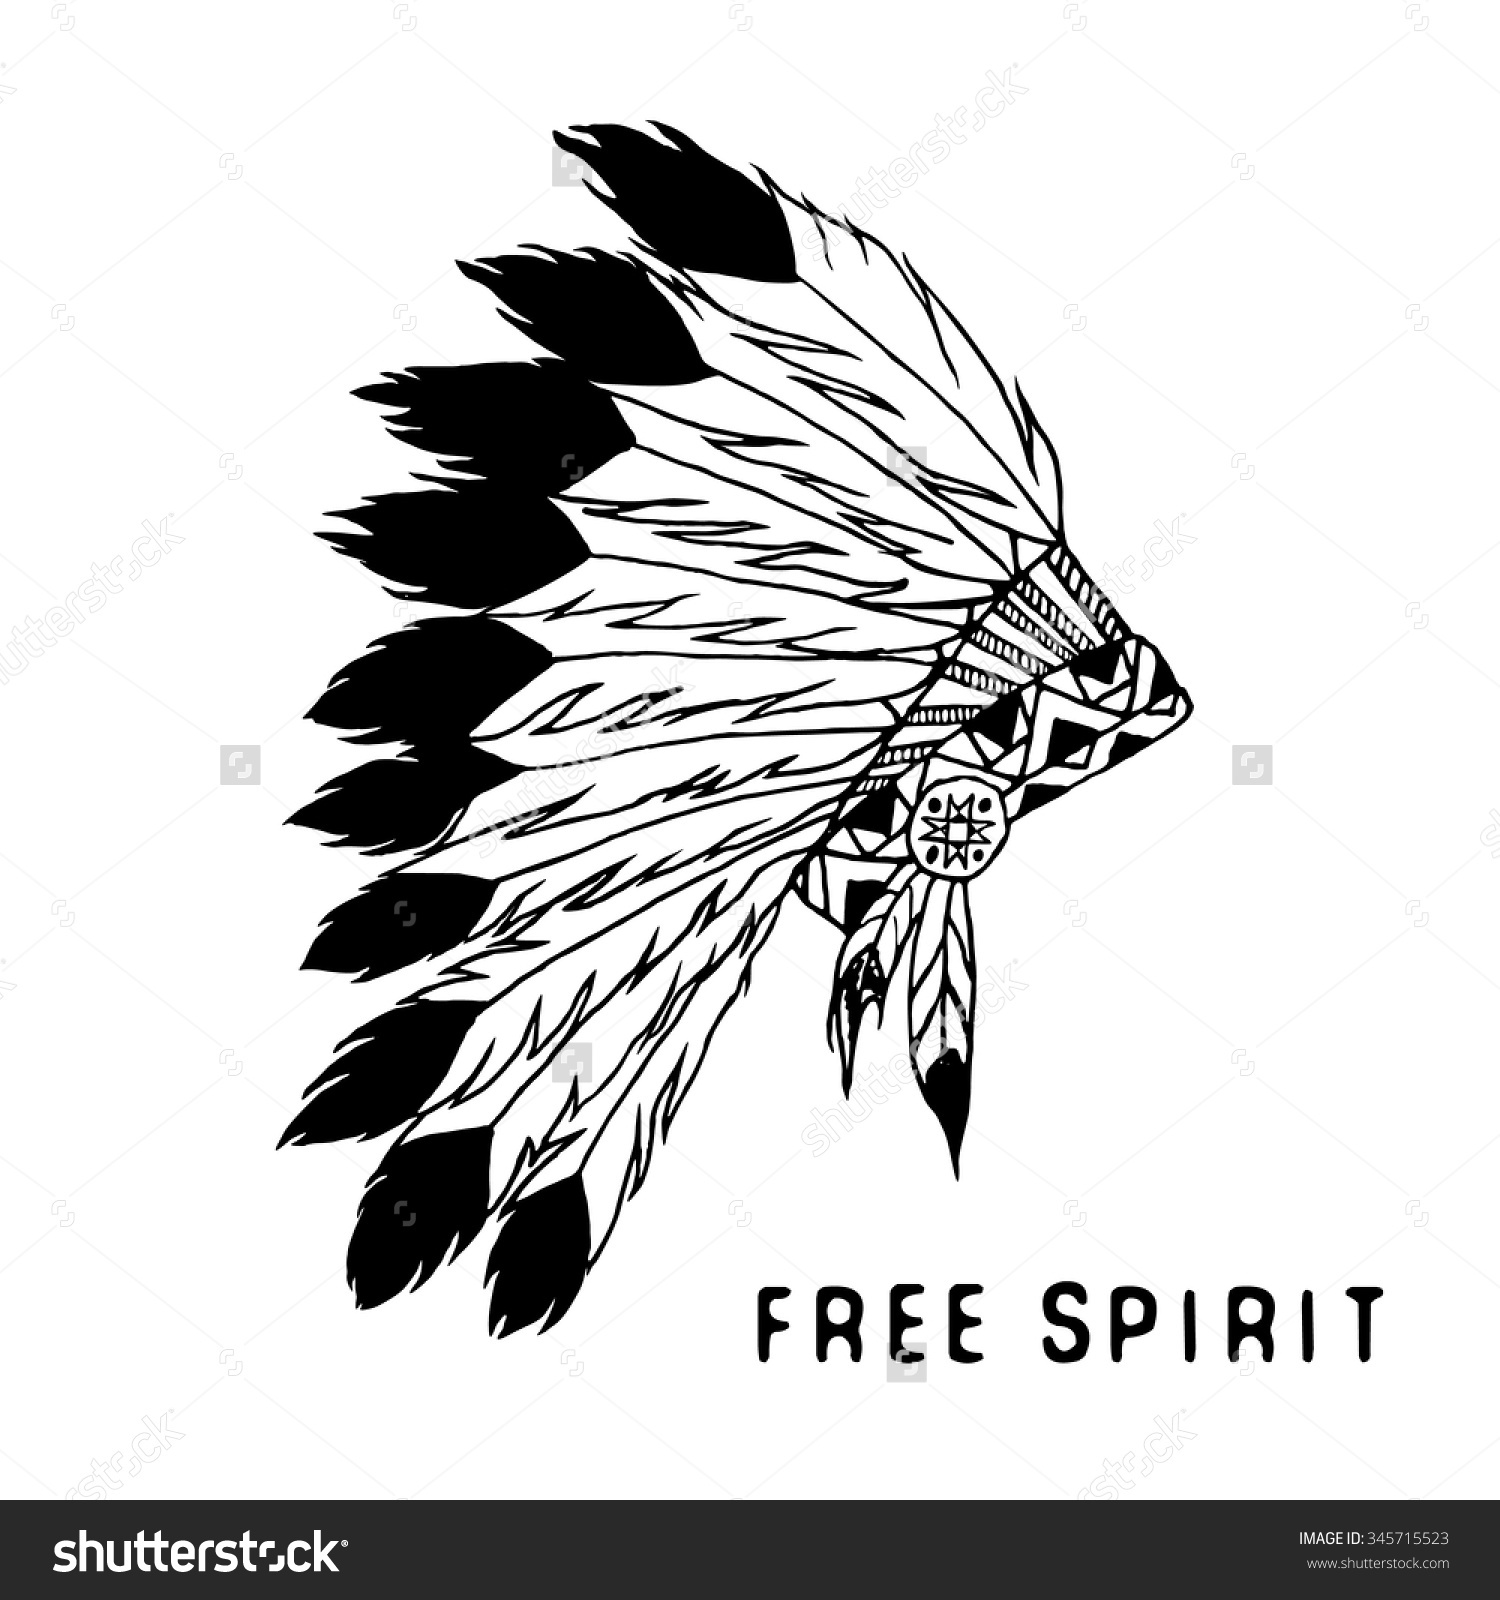 Similiar Black And White Indian Headdress Clip Art Keywords.